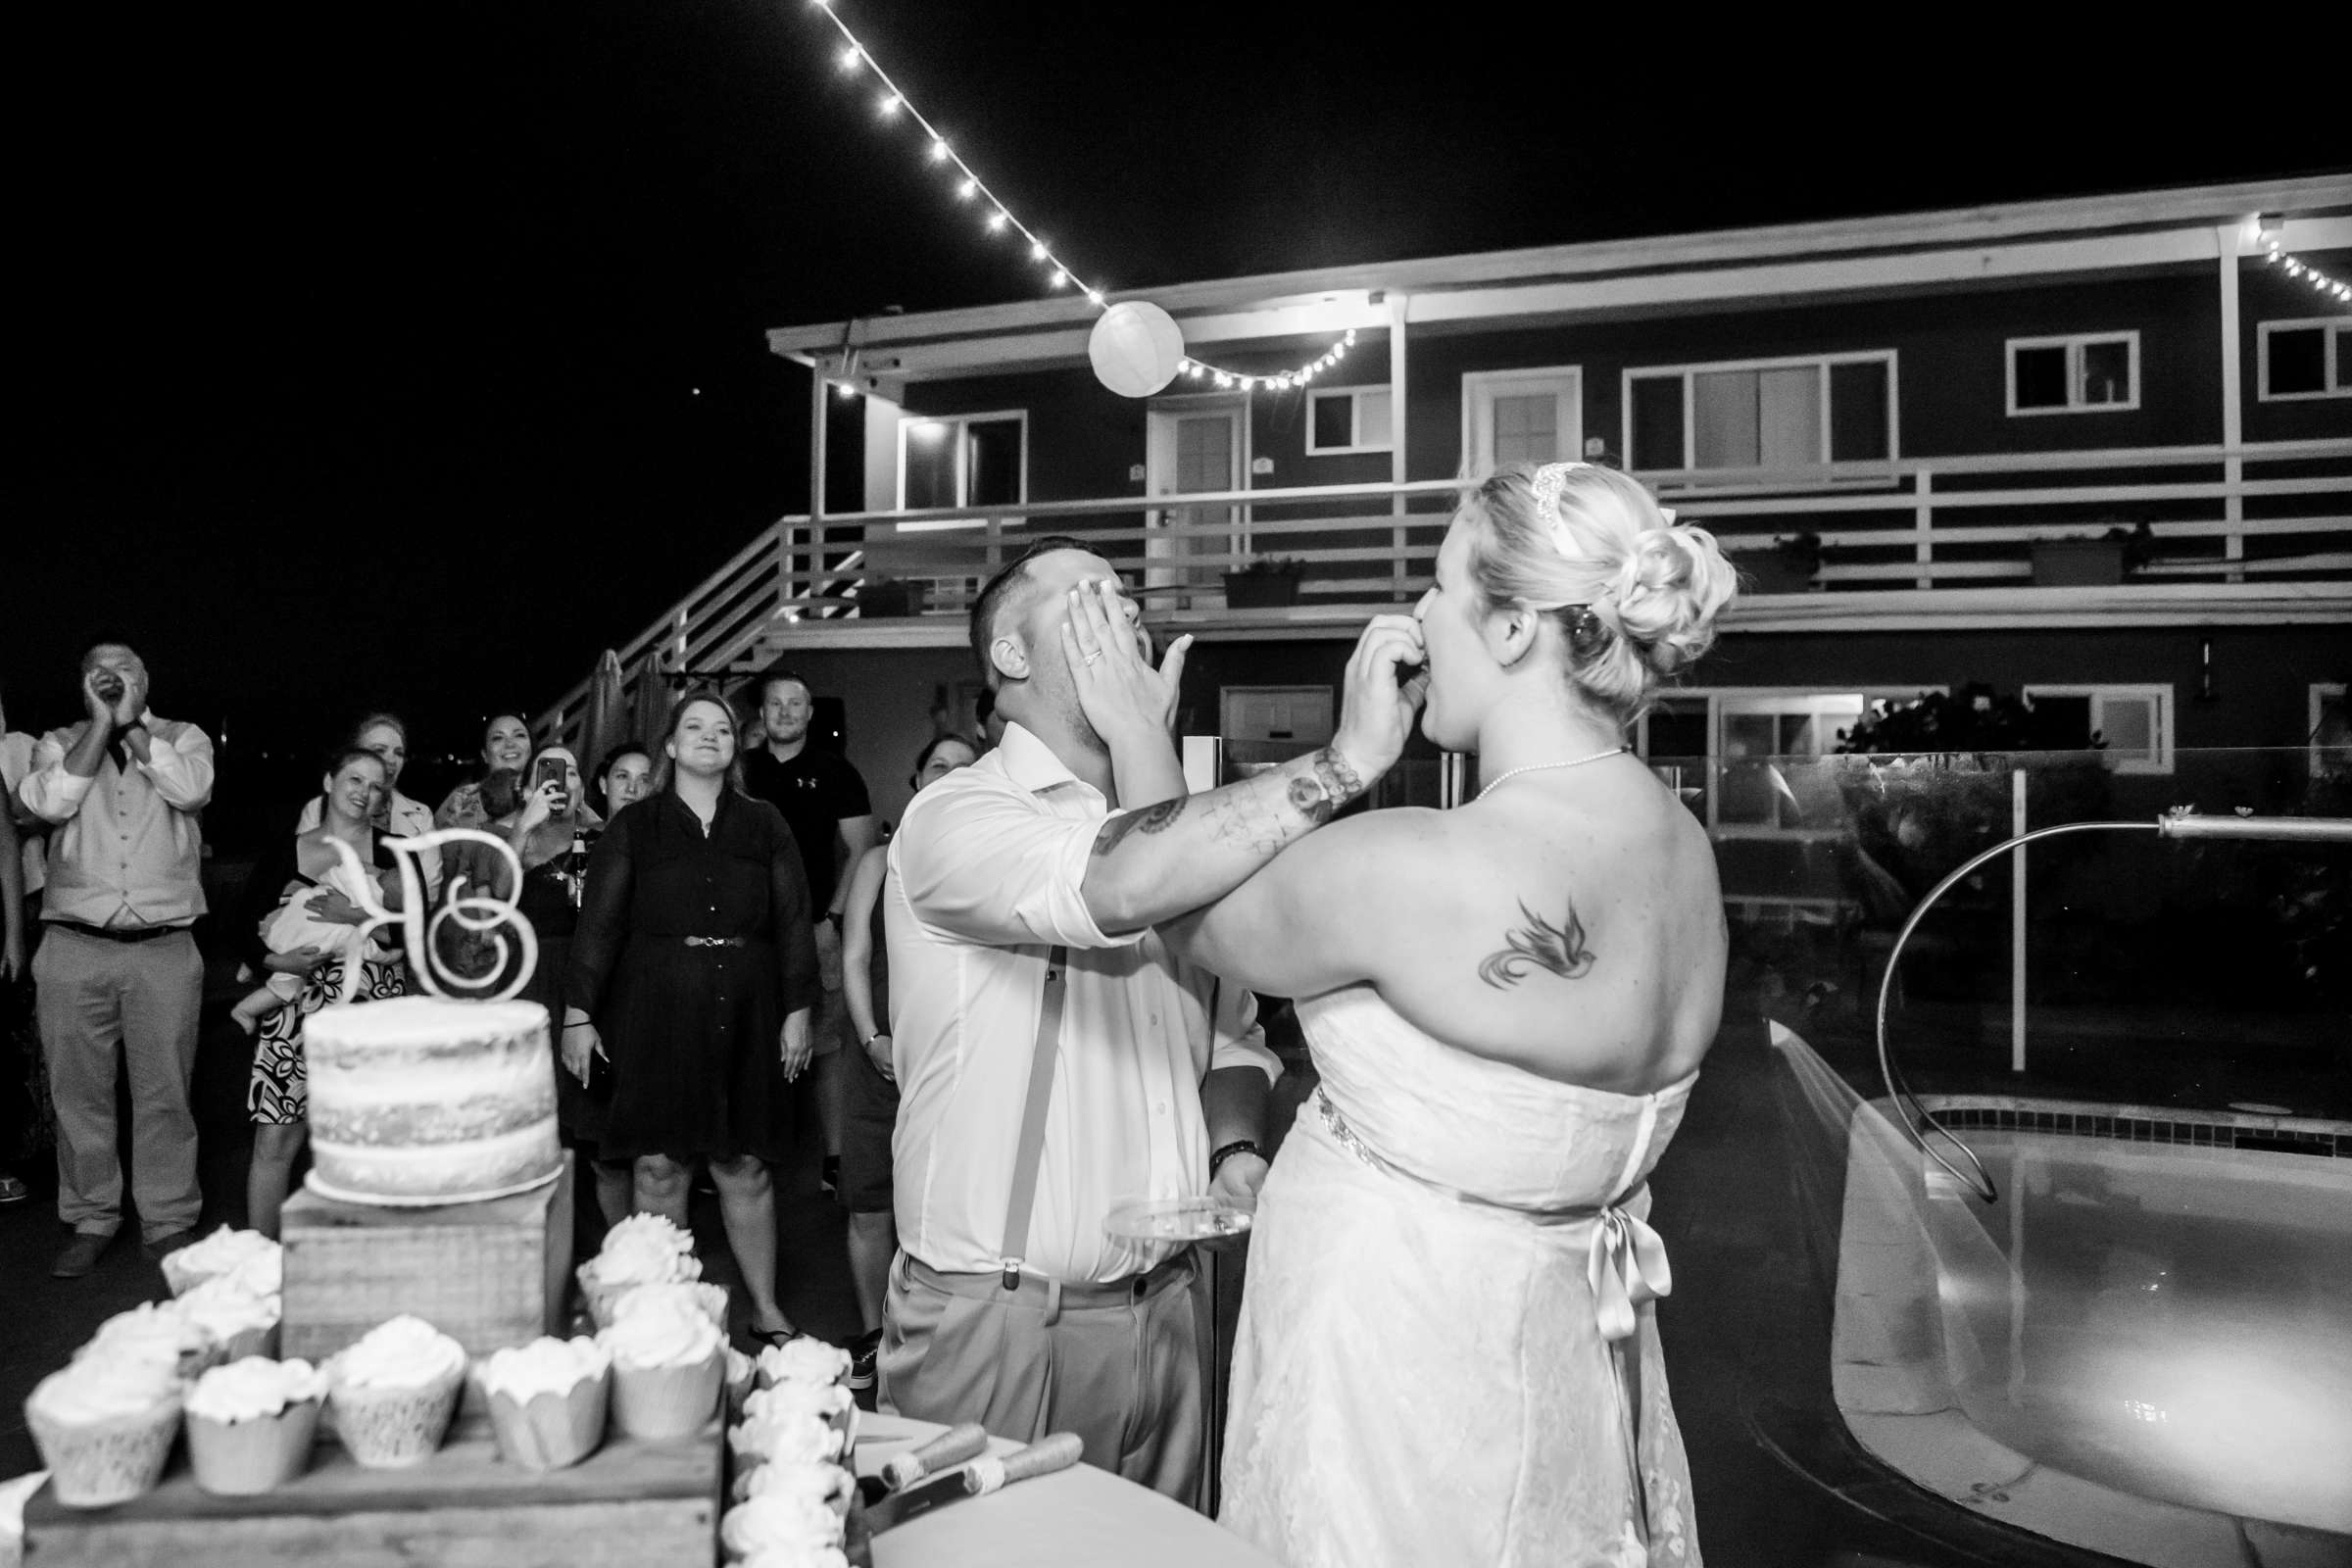 The Inn at Sunset Cliffs Wedding, Melinda and Benjamin Wedding Photo #106 by True Photography